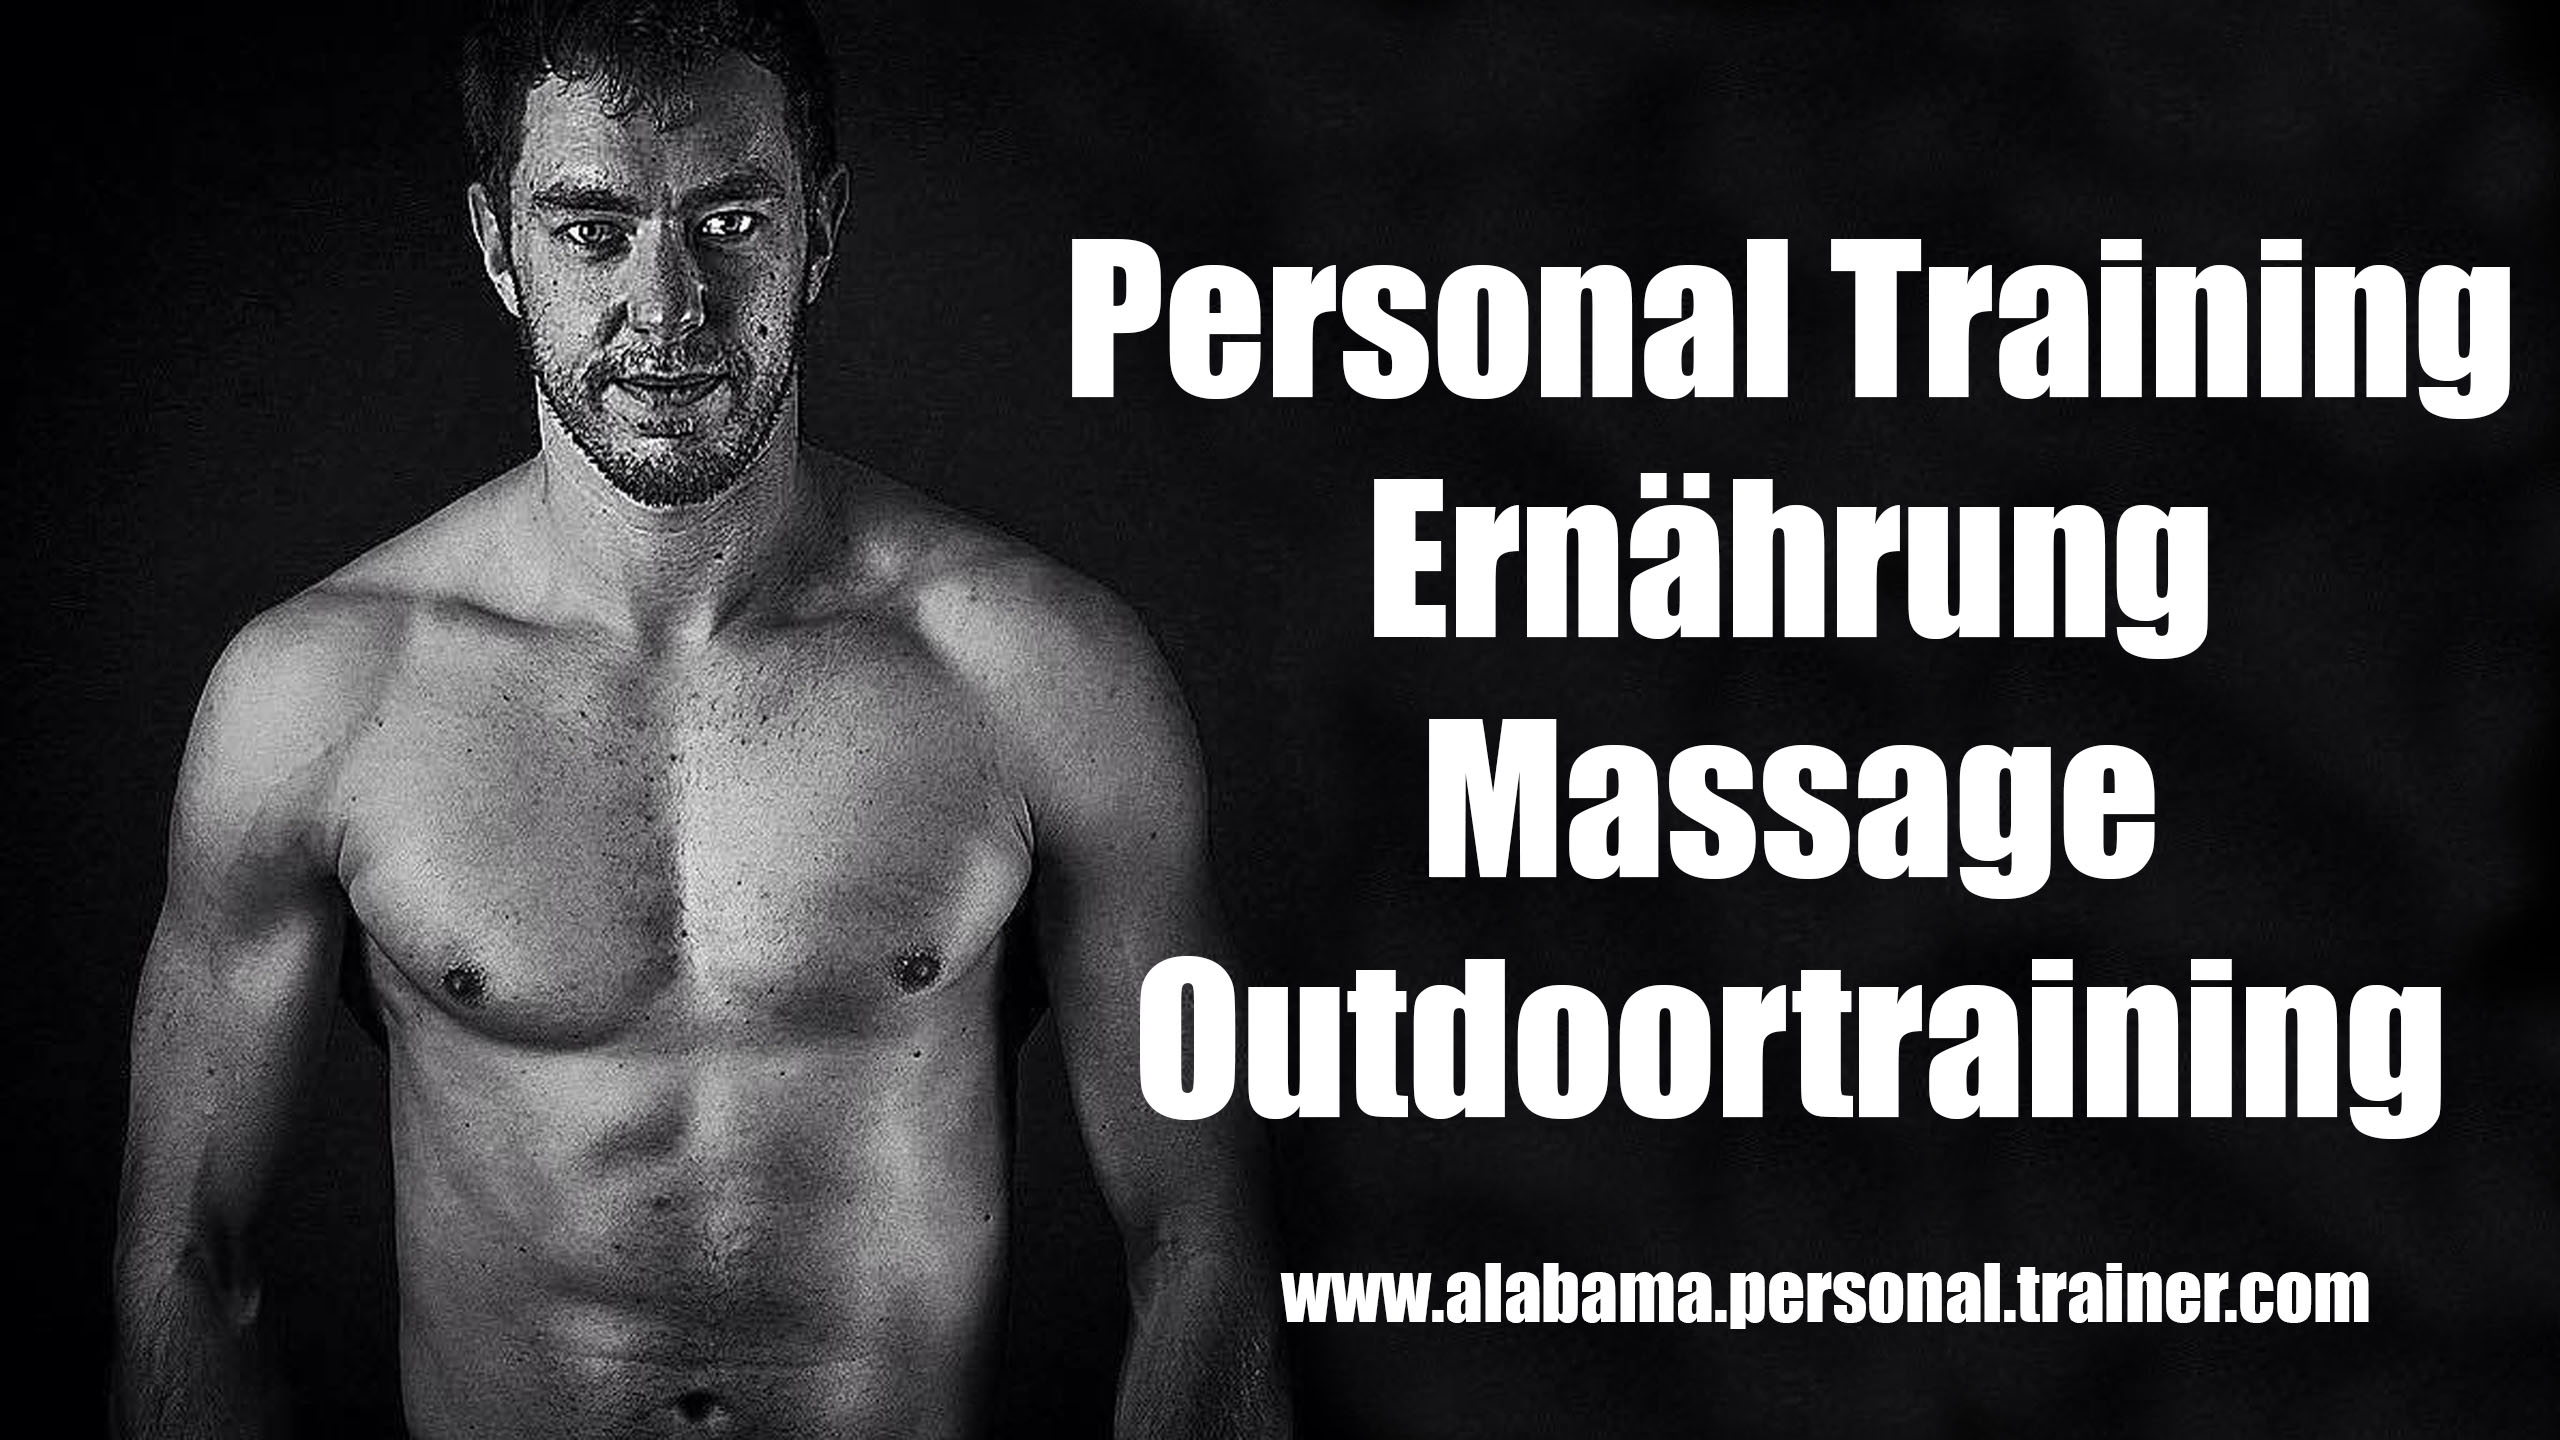 Alabama Personal Trainer